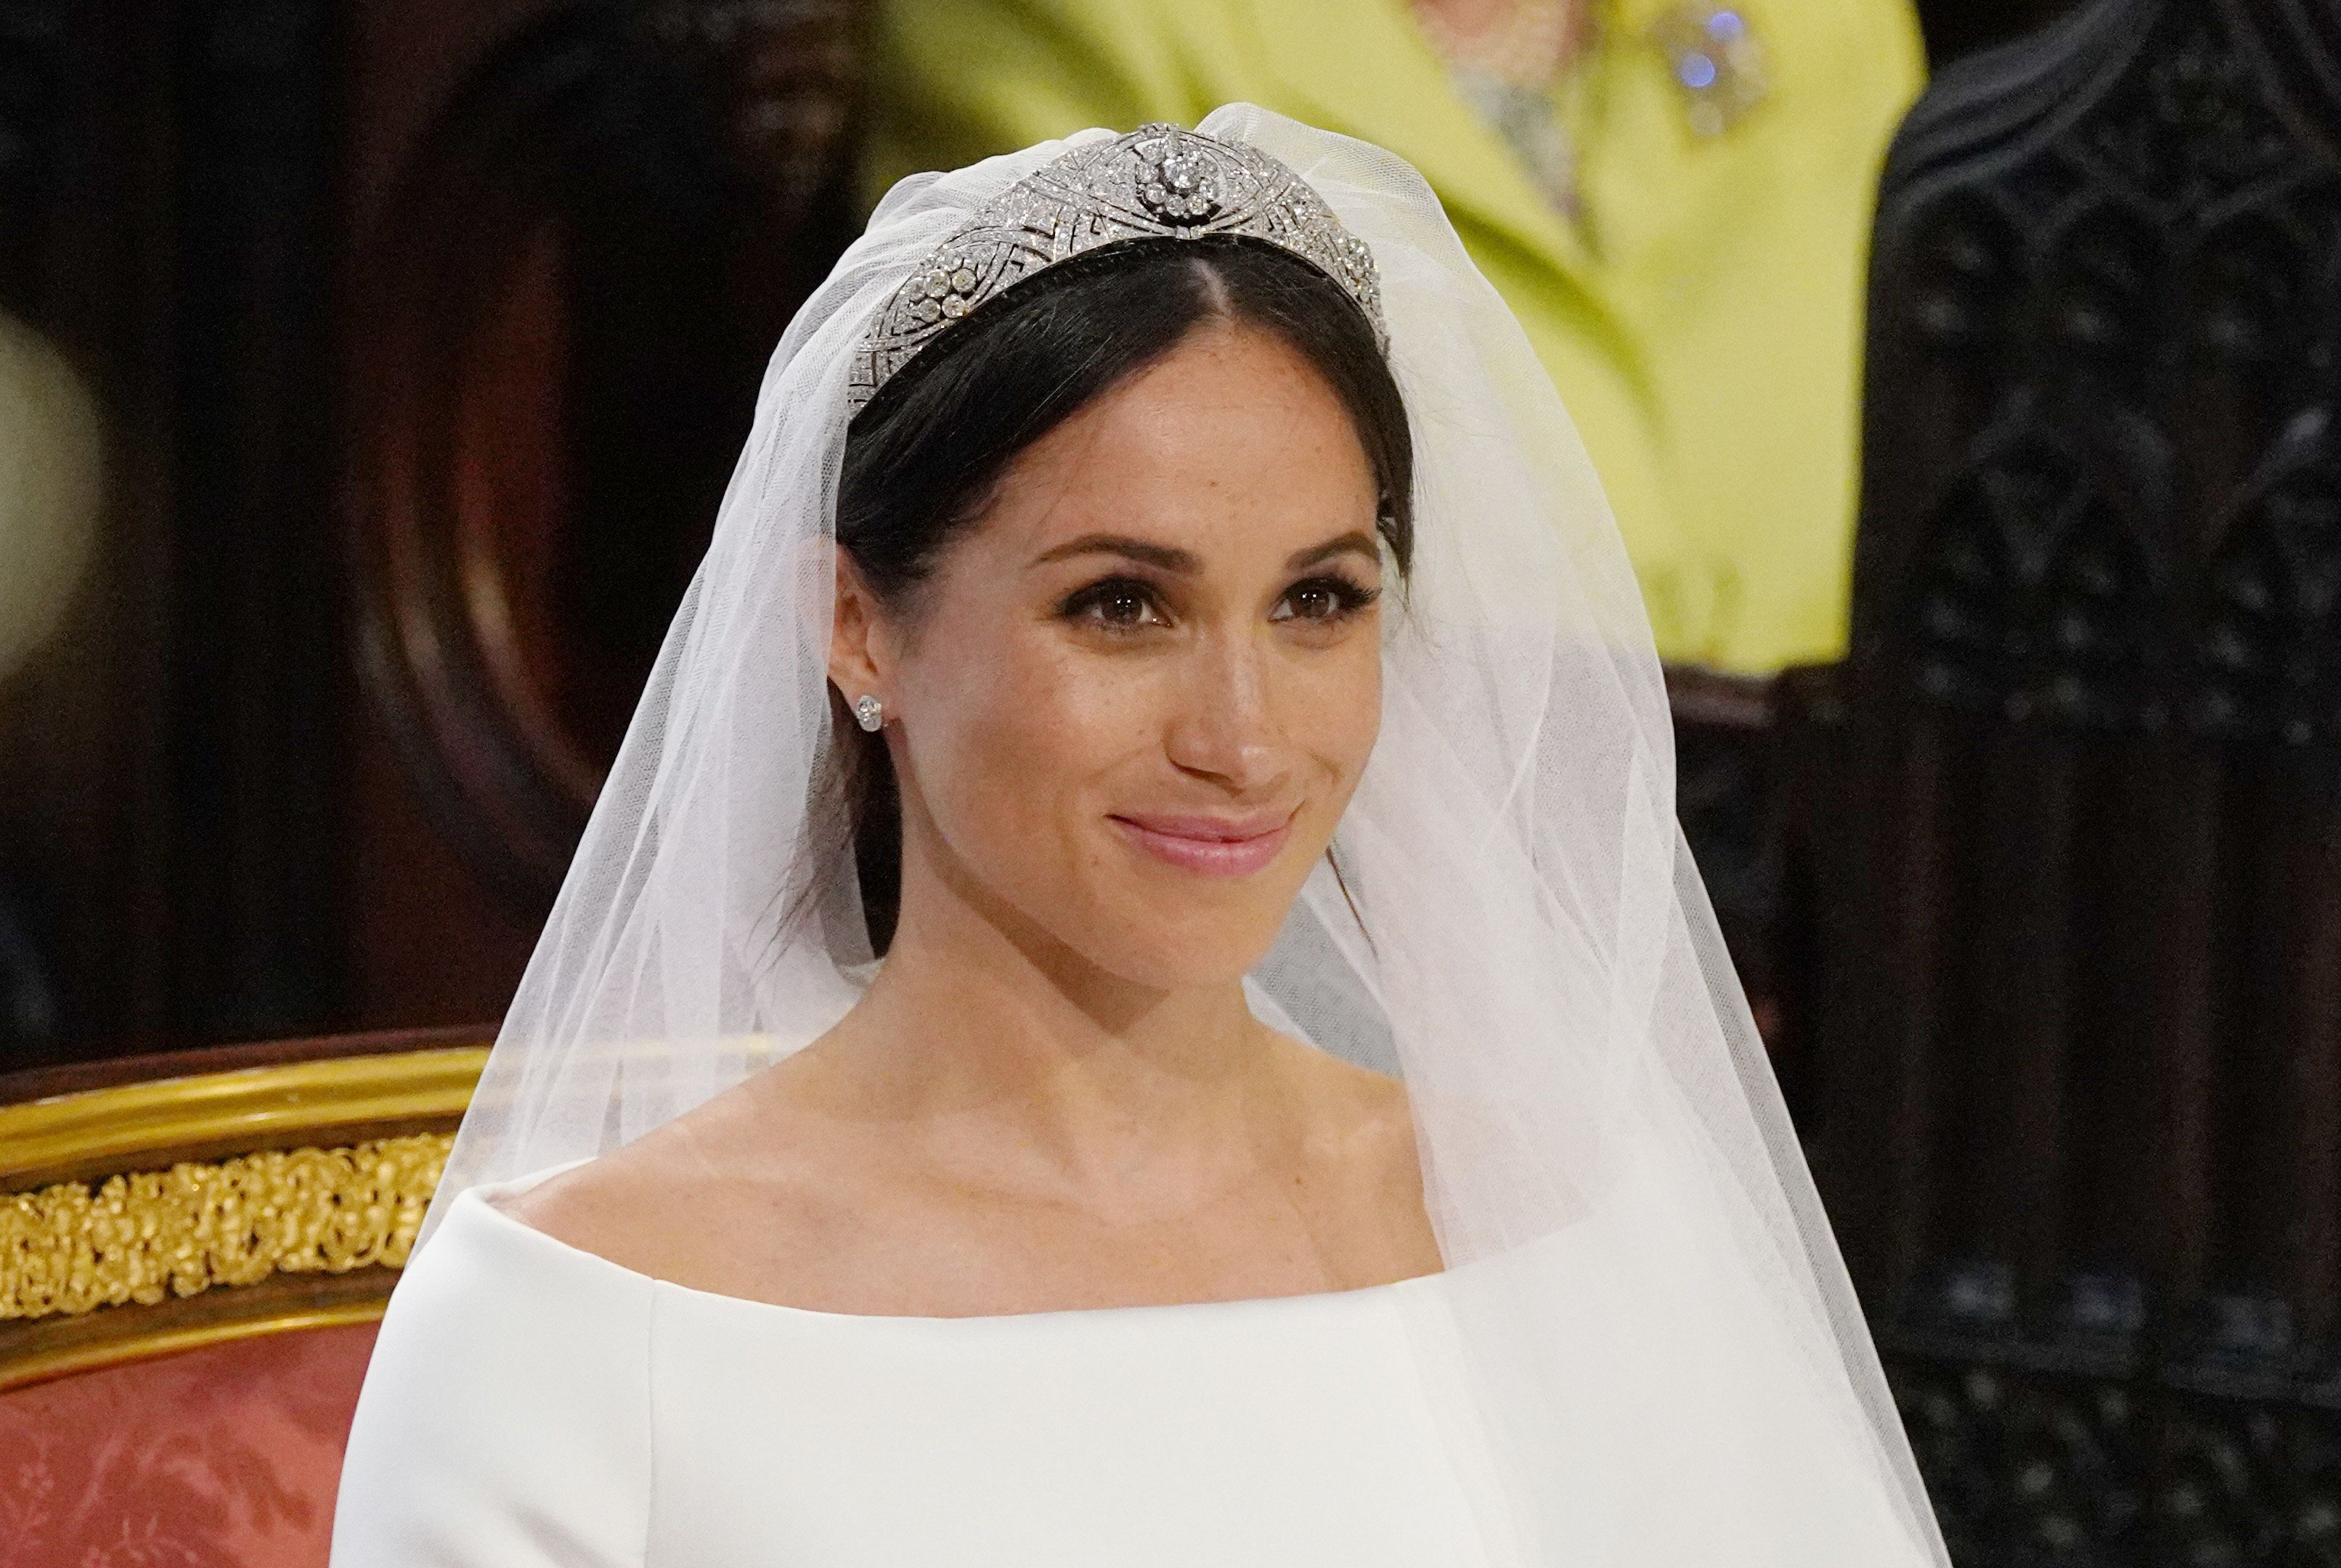 What We Know About Meghan Markle's Life As Duchess Of Sussex